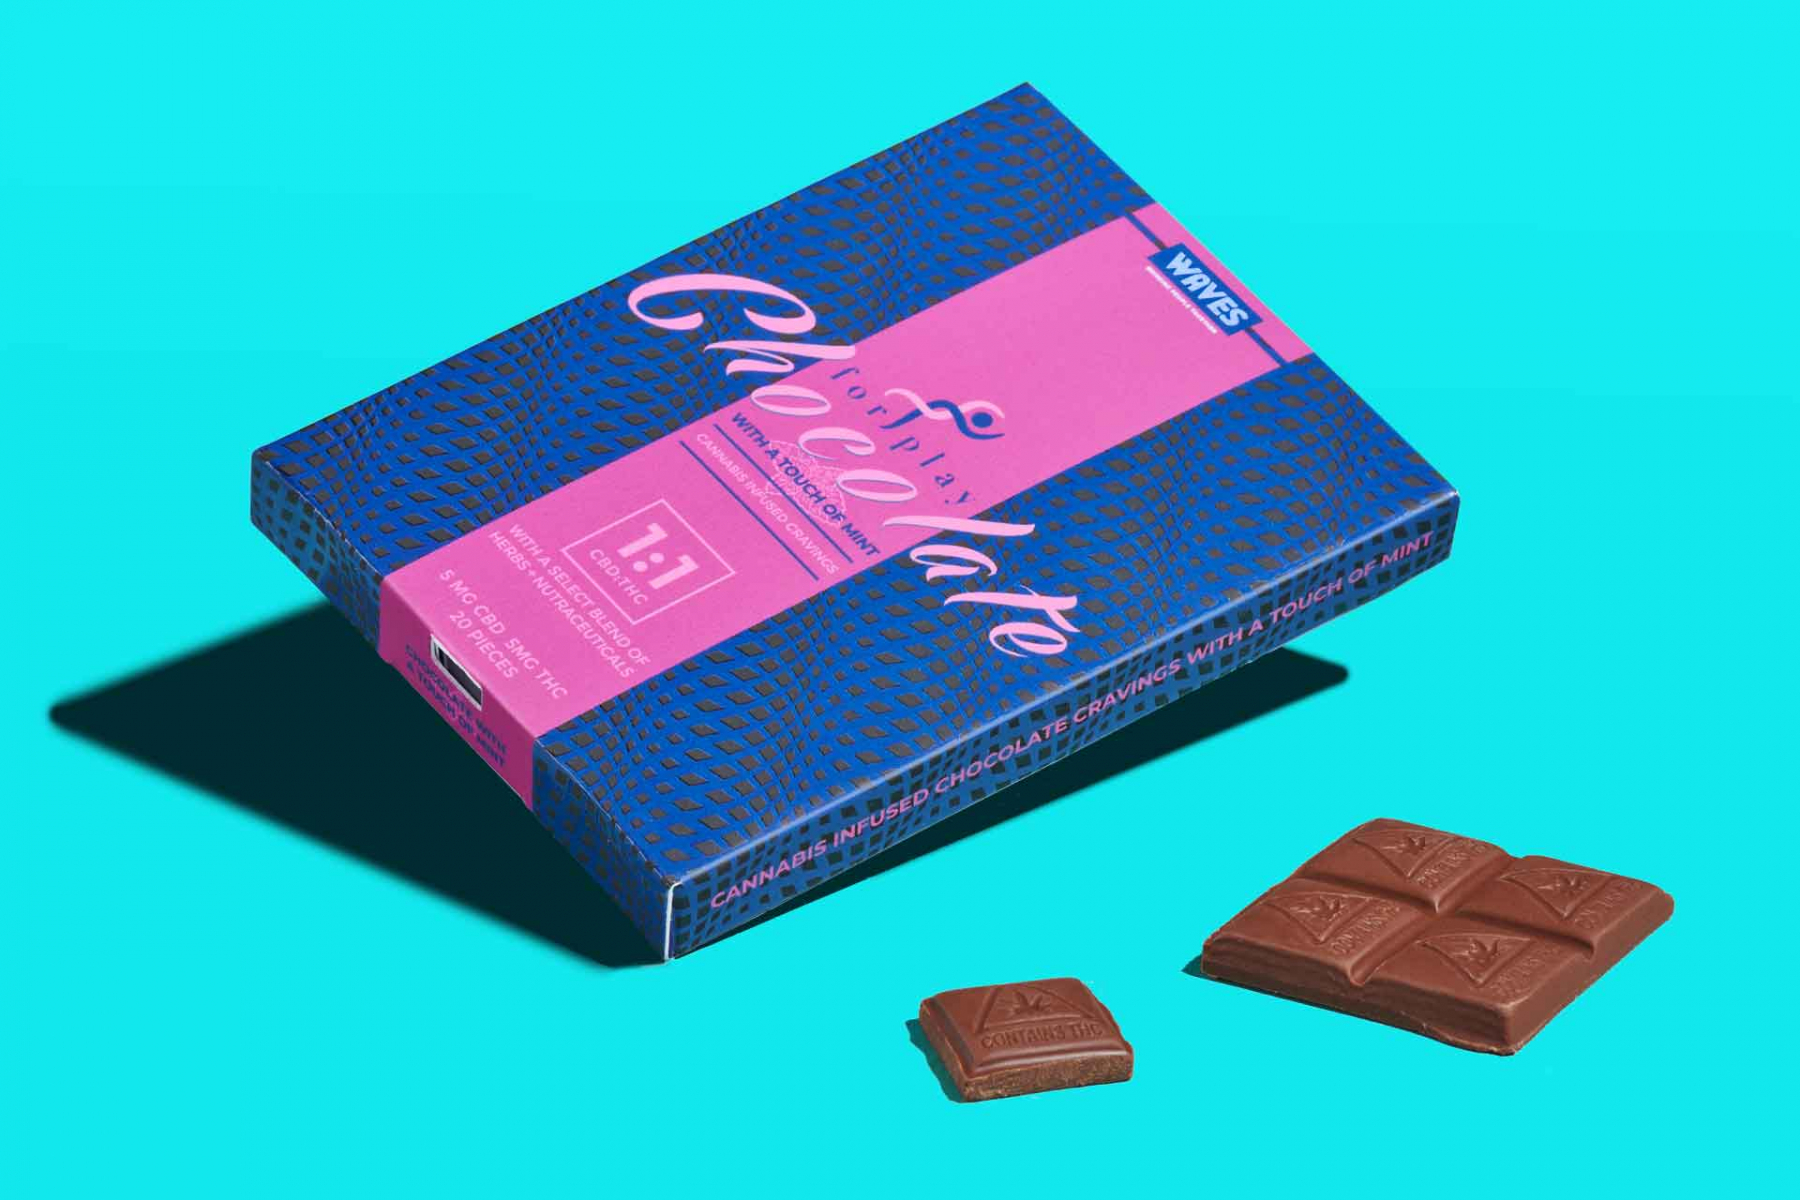 For Play Chocolate Cannibis infused chocolate bar packaging